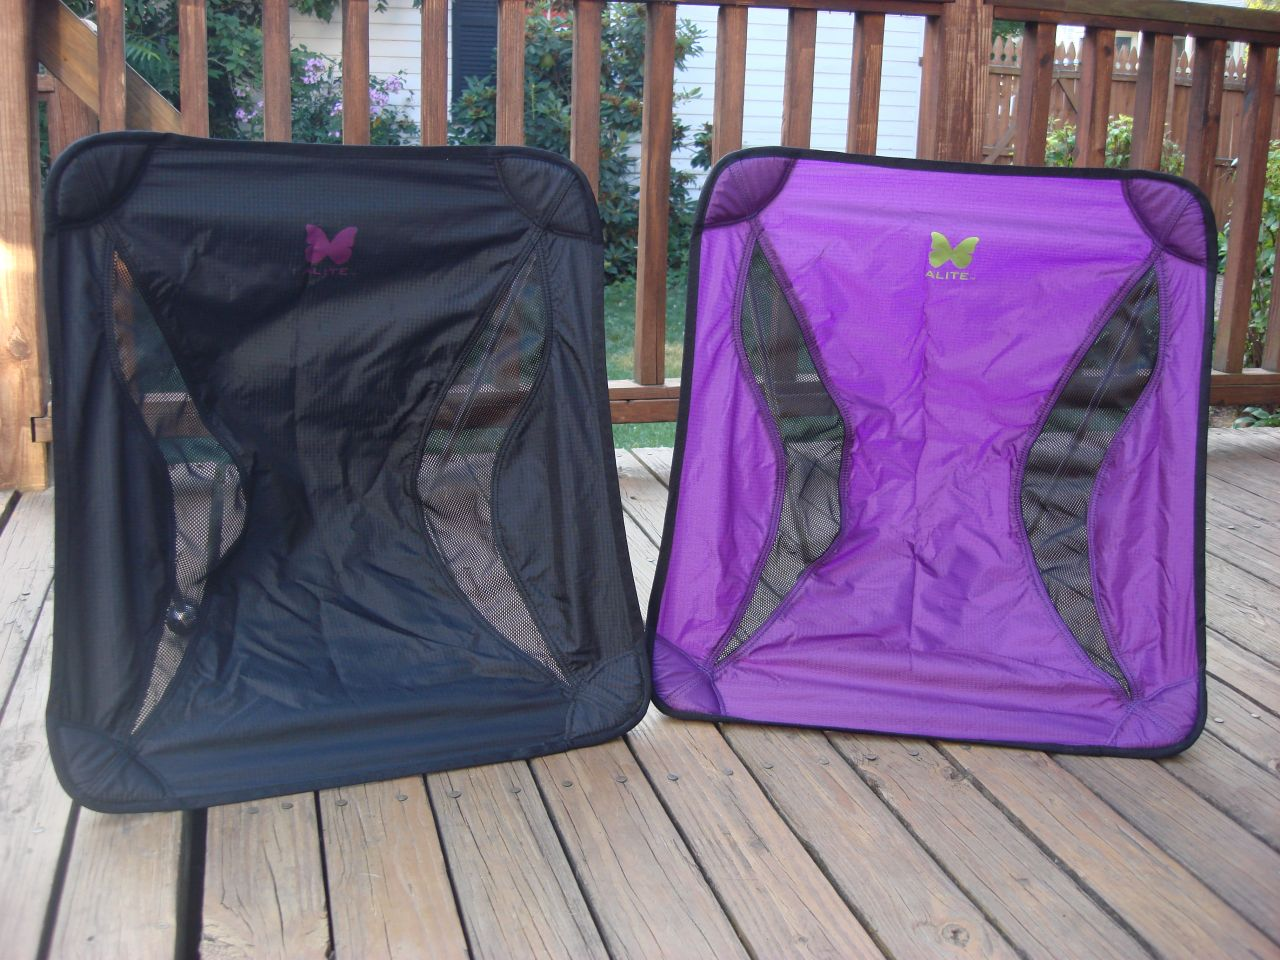 A-lite Chairs